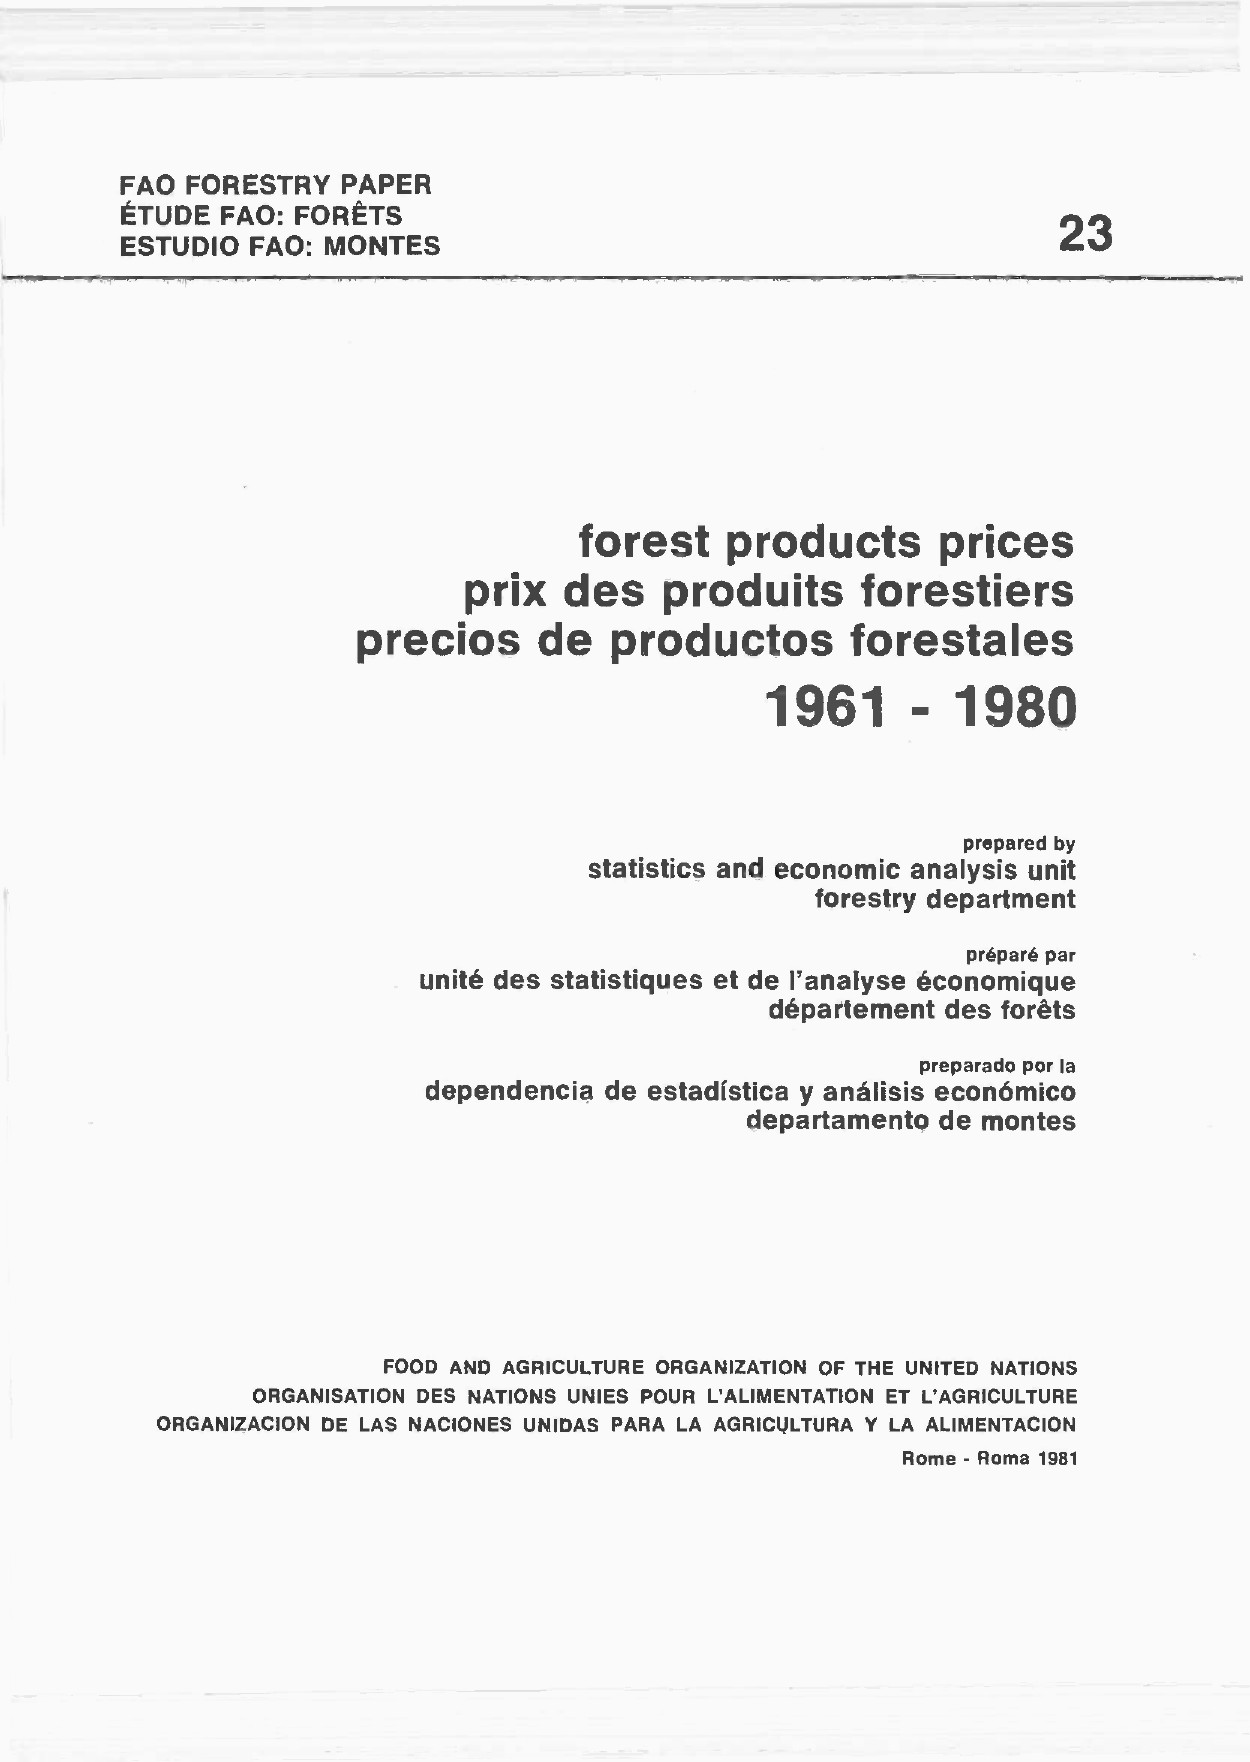 Pate En Anglais De Luxe forest Products Prices 1961 1980 Images